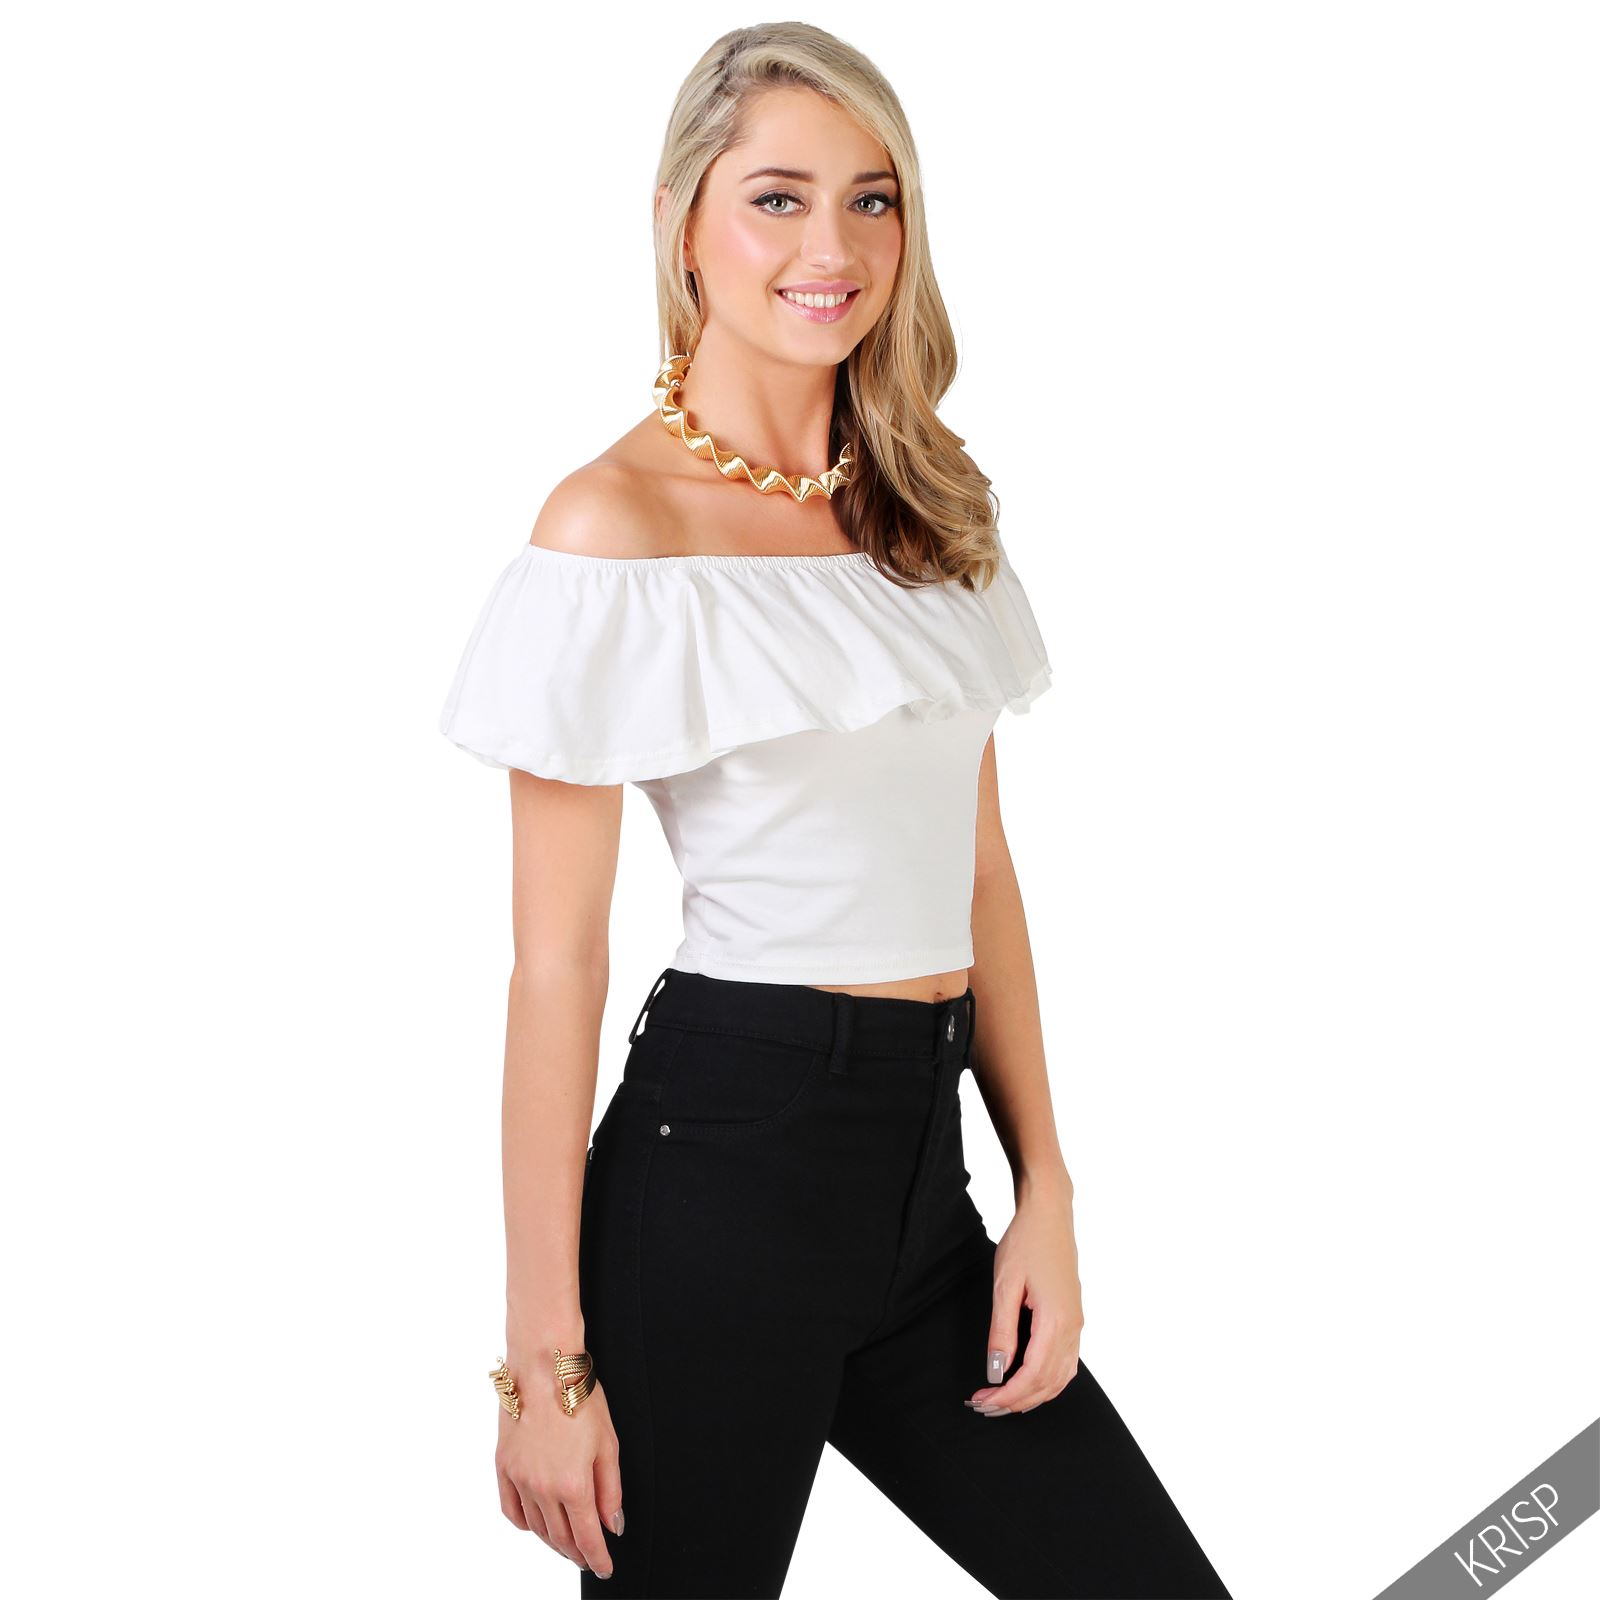 damen kurzes bandeau carmen top schulterfrei volant bluse stretchtop shirt ebay. Black Bedroom Furniture Sets. Home Design Ideas